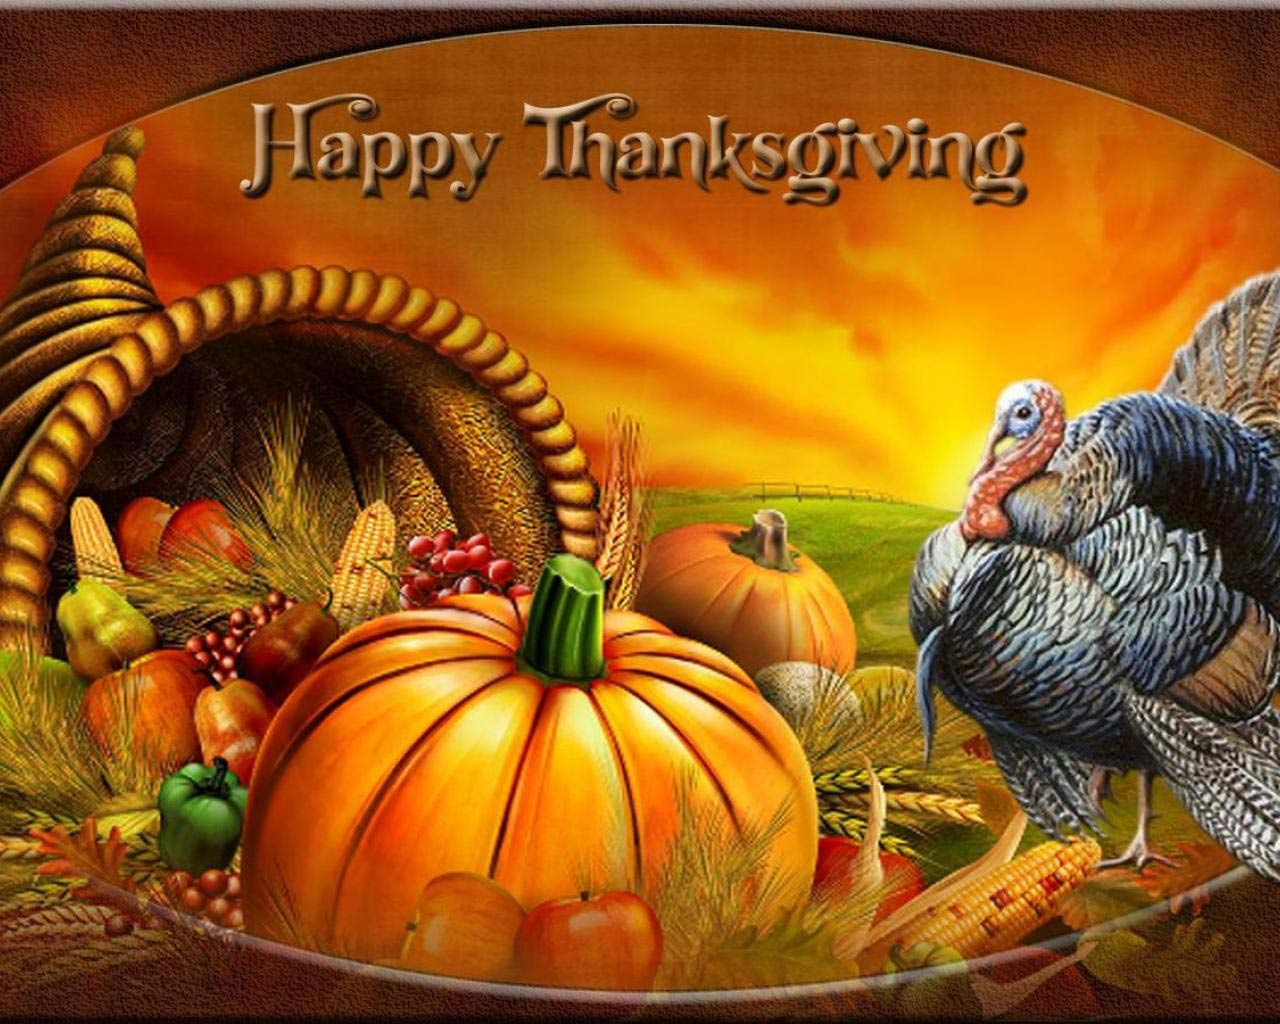 Happy thanksgiving greeting card and wallpaper httpriversongs happy thanksgiving greeting card and wallpaper httpriversongs kristyandbryce Choice Image